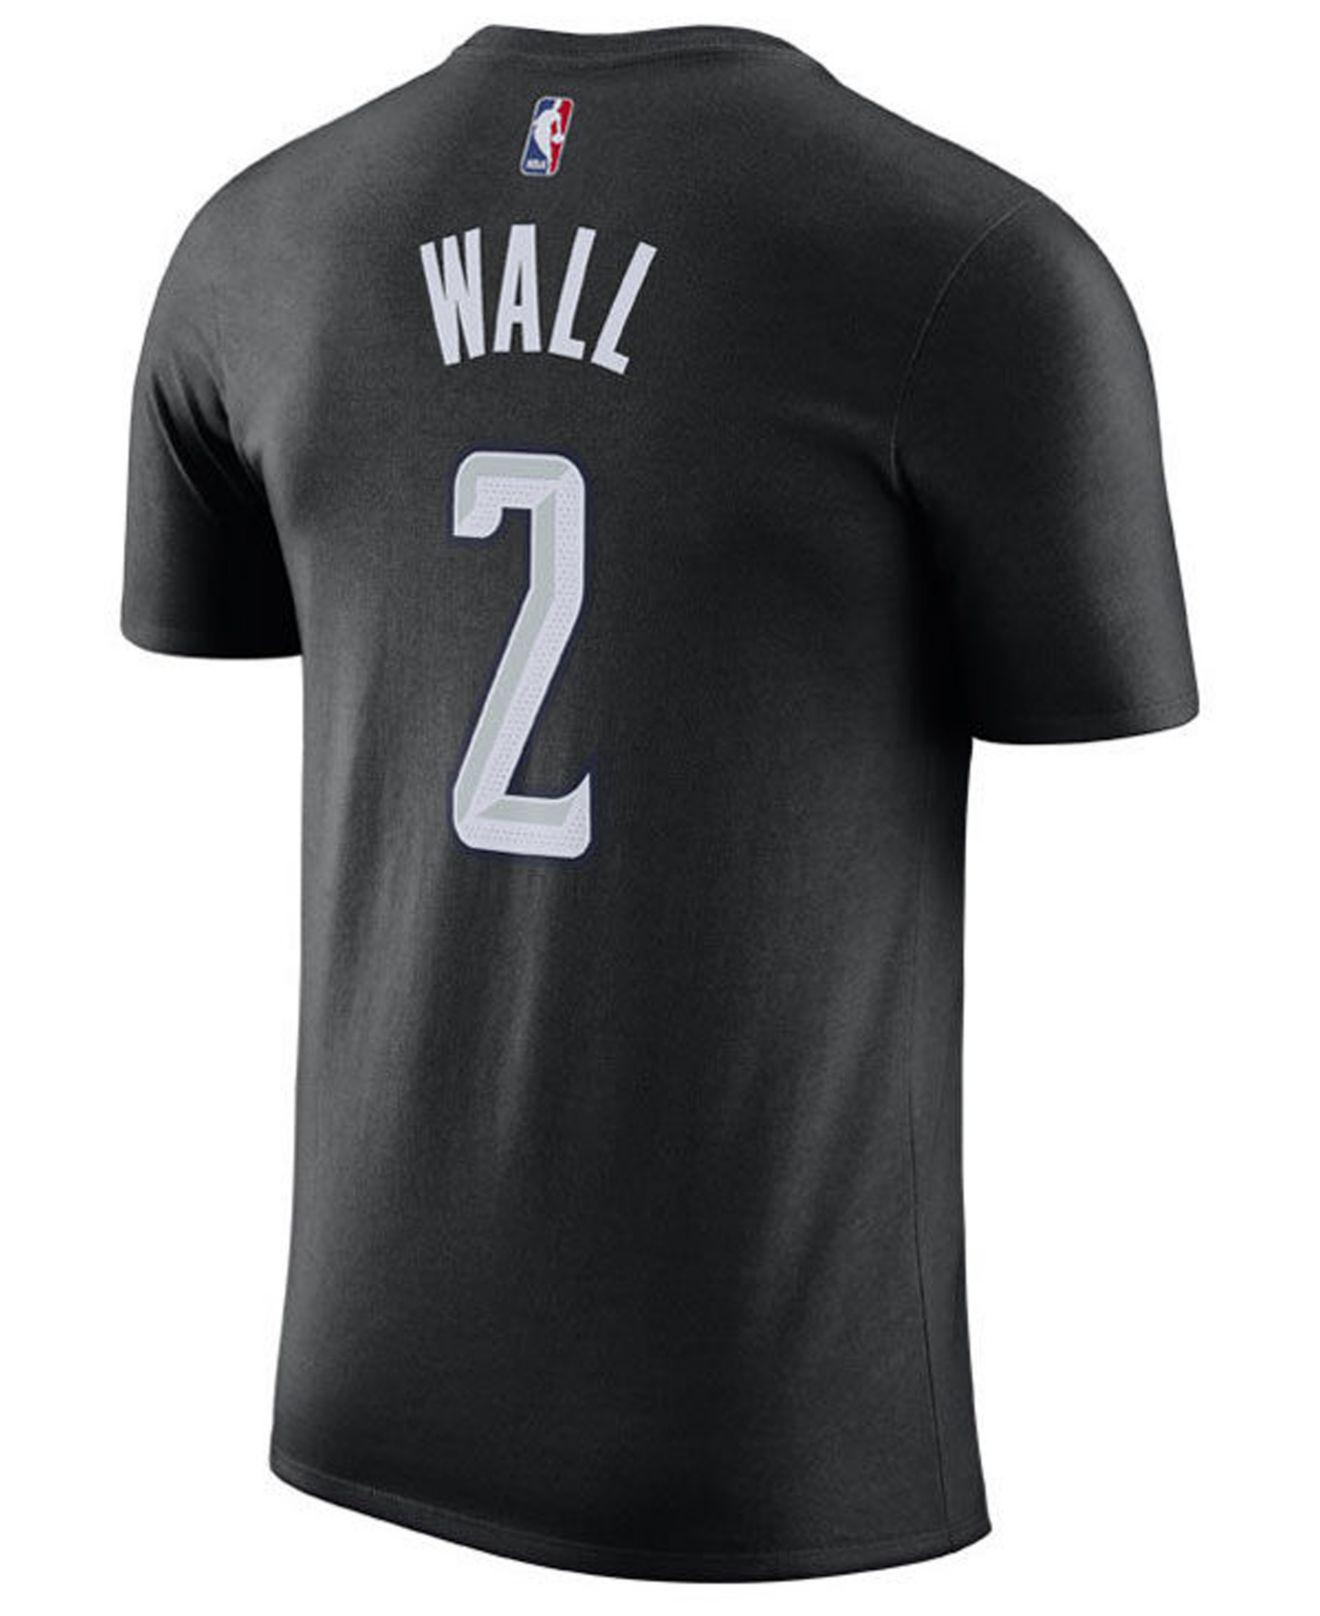 Lyst - Nike John Wall Washington Wizards City Player T-shirt 2018 in Black  for Men a87c02a85